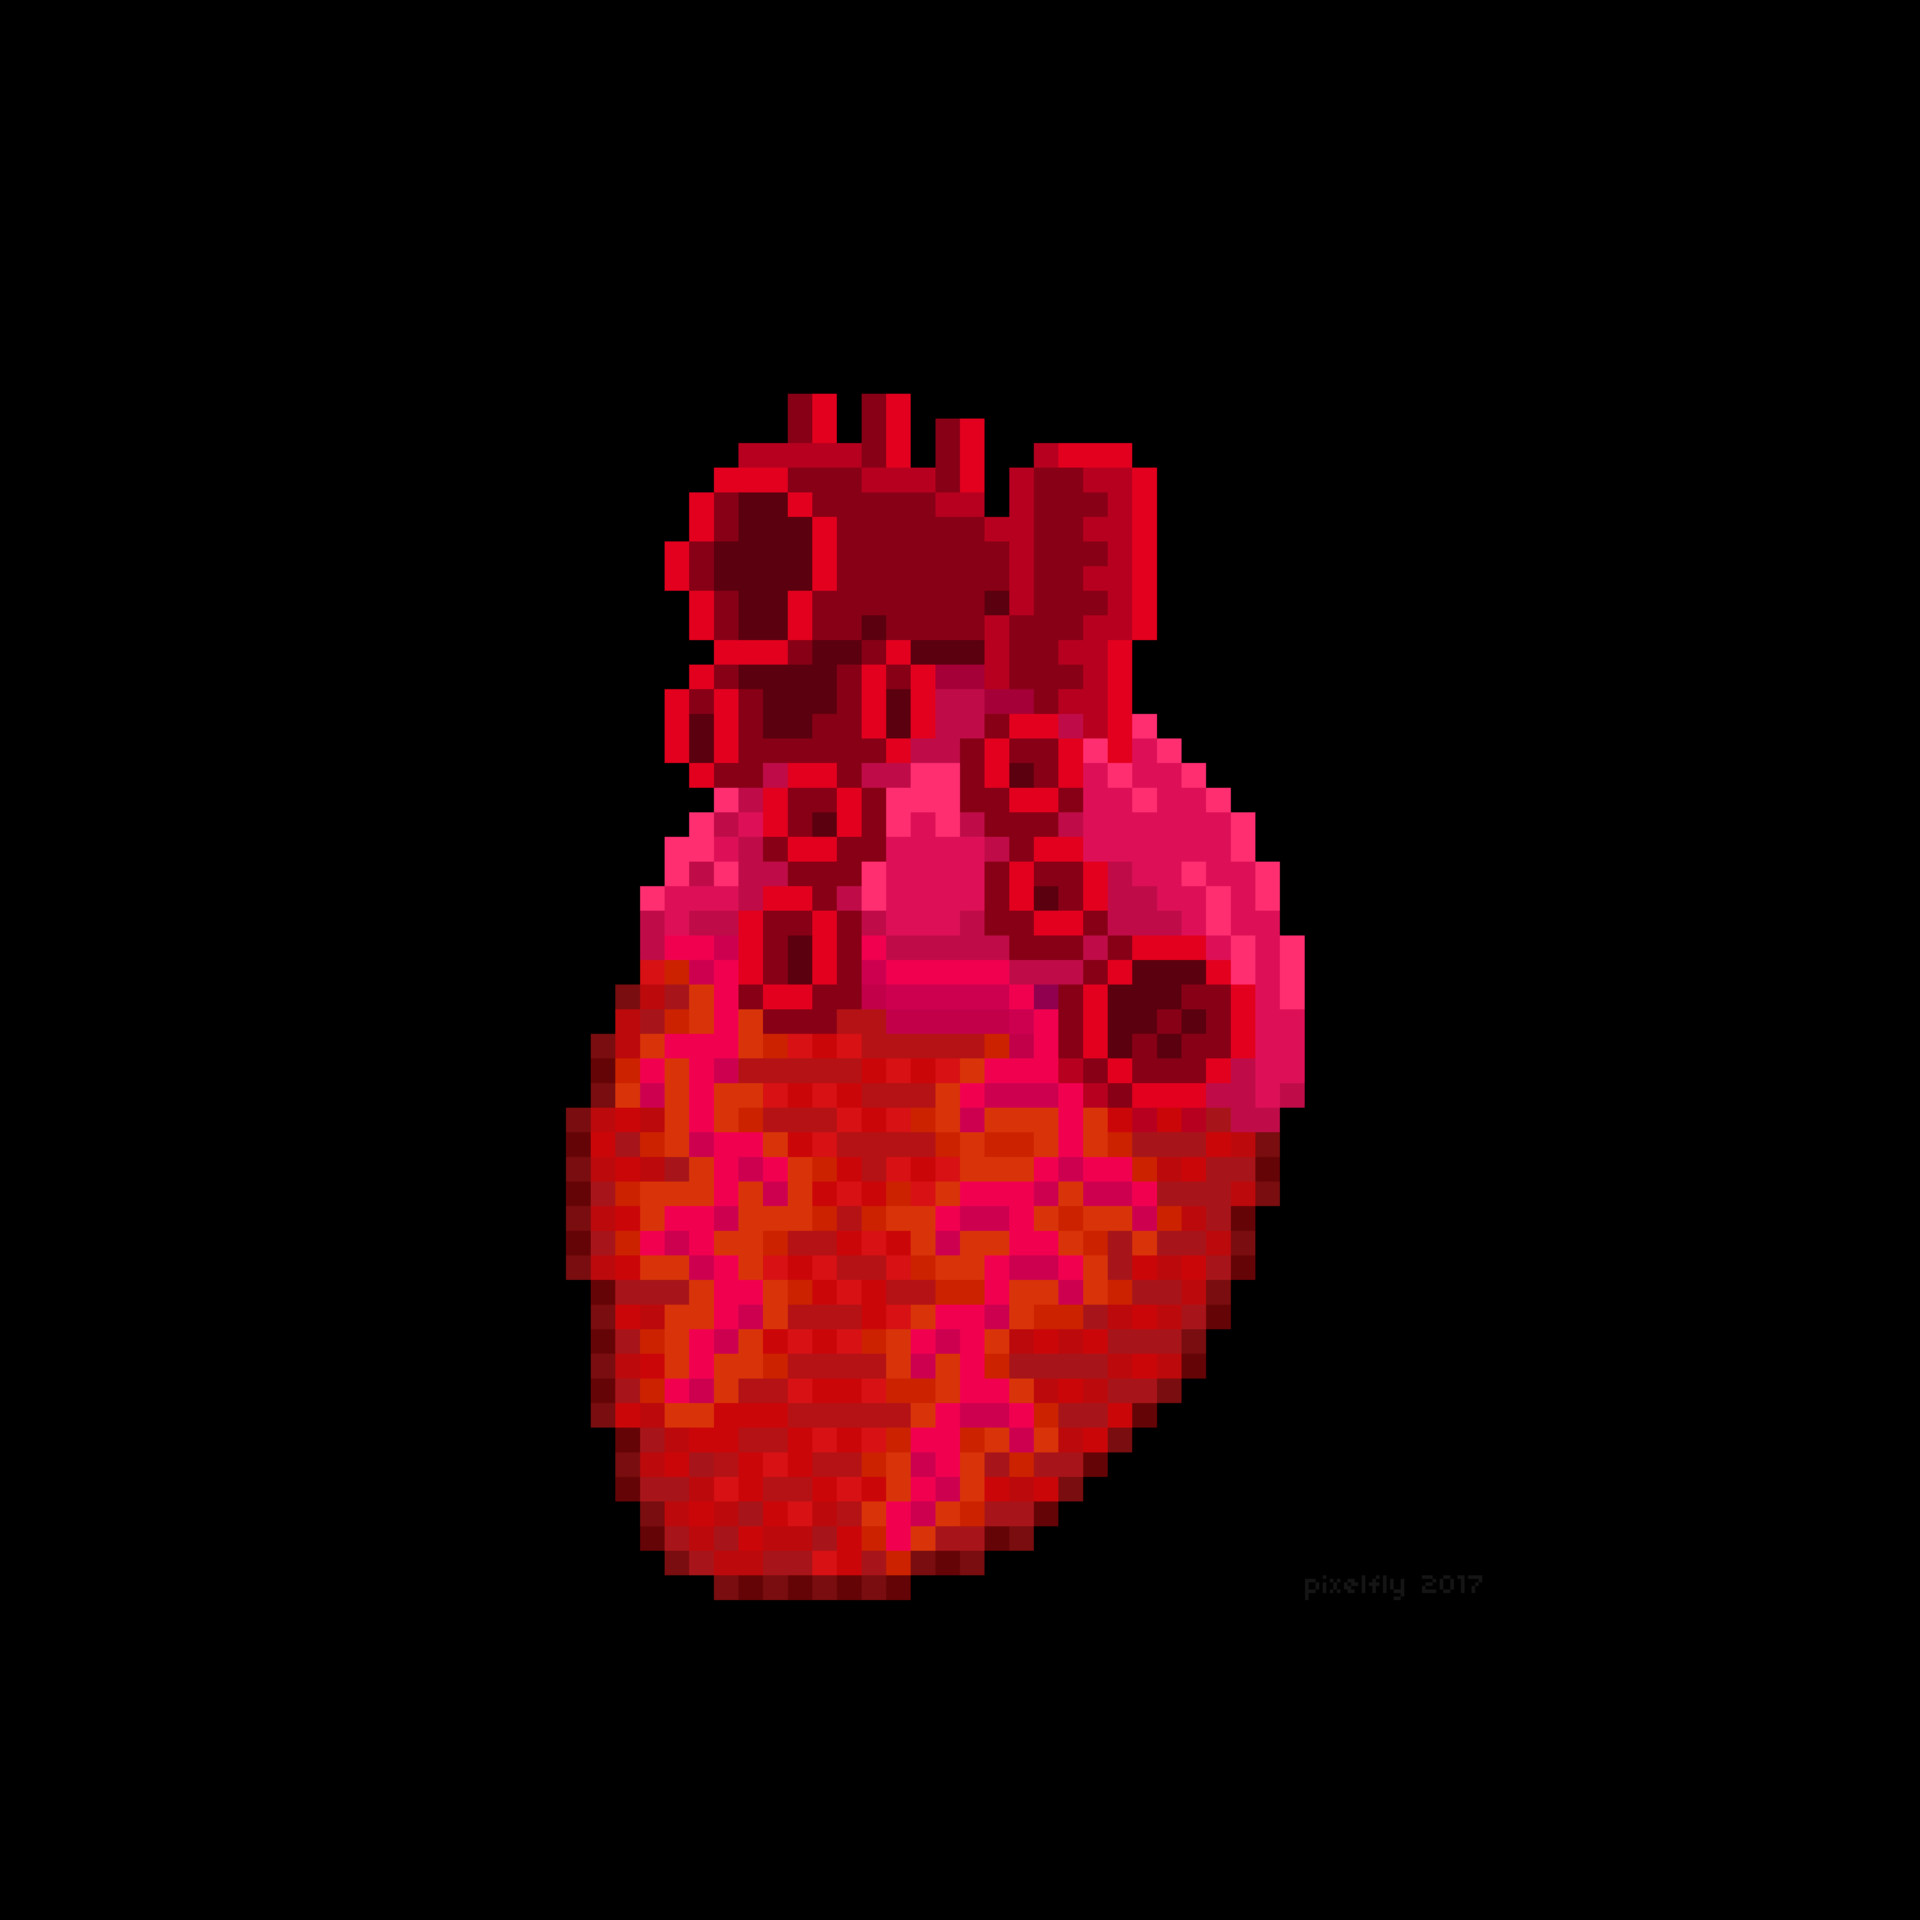 Michael perez heart 6500x6500